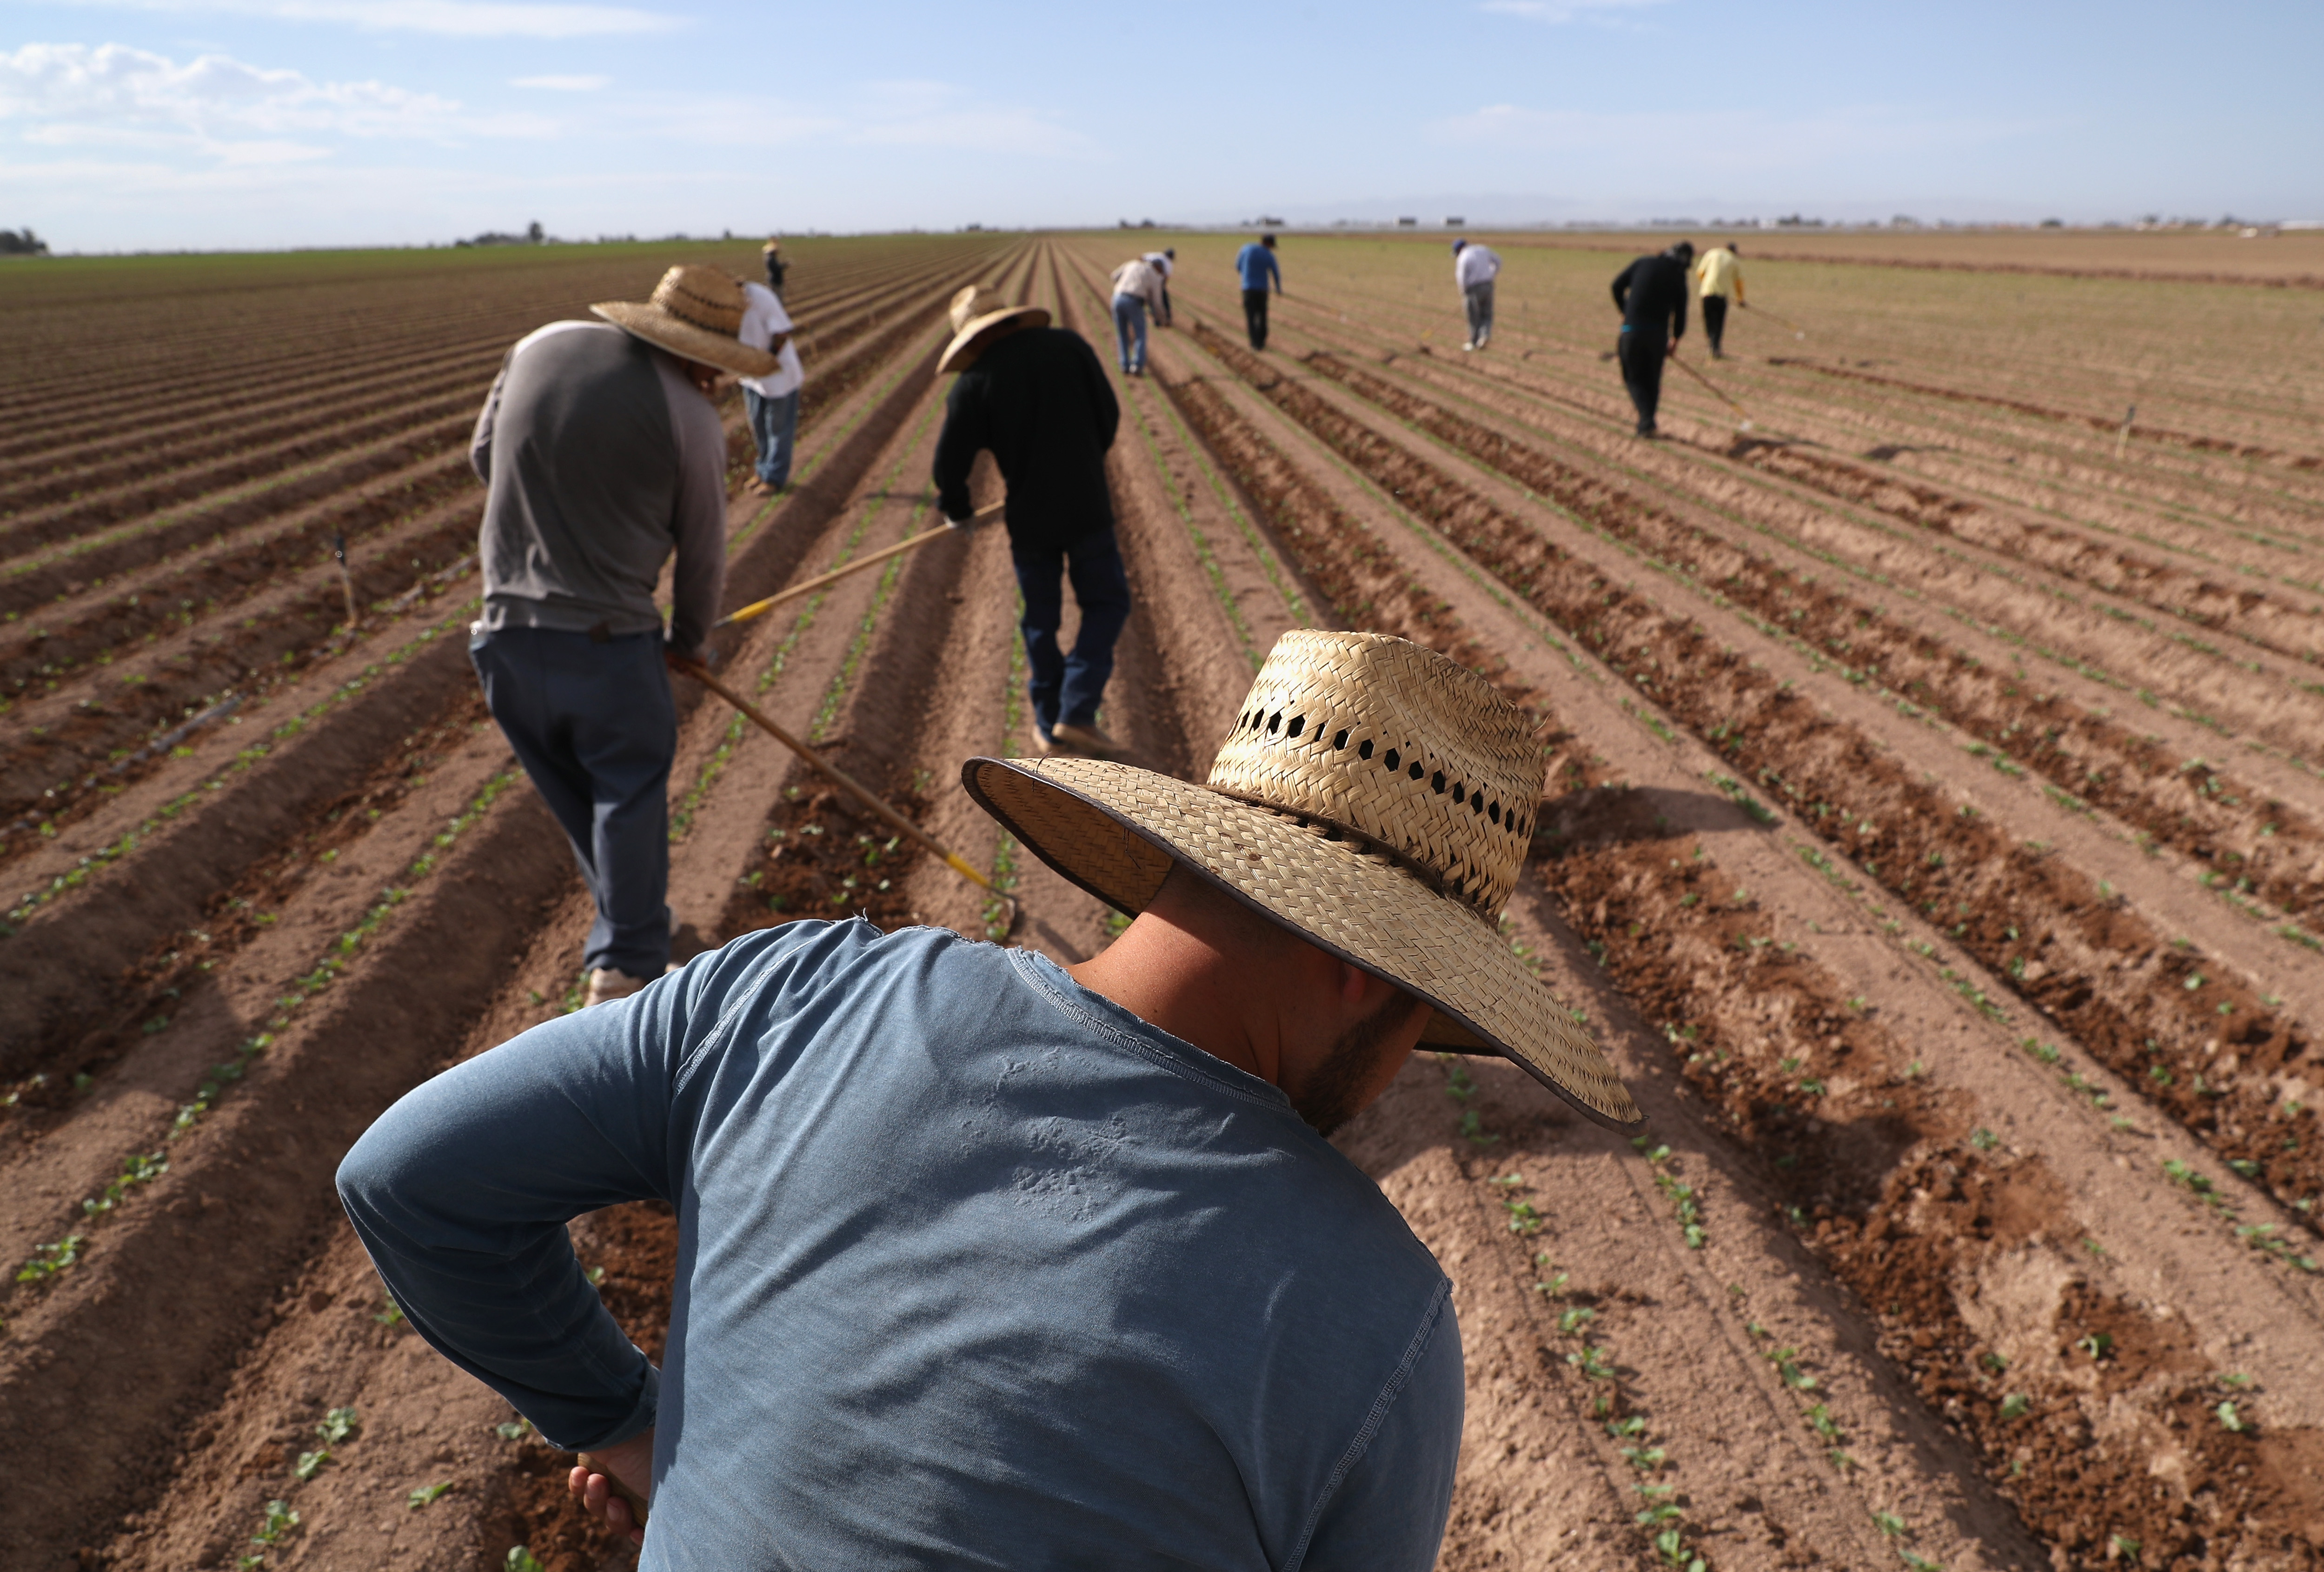 Mexican farm workers hoe a cabbage field on Sept. 27, 2016, in Holtville, Calif. Thousands of Mexican seasonal workers legally cross over daily from Mexicali, Mexico to work the fields of Imperial Valley, Calif., which is some of the most productive farmland in the United States.